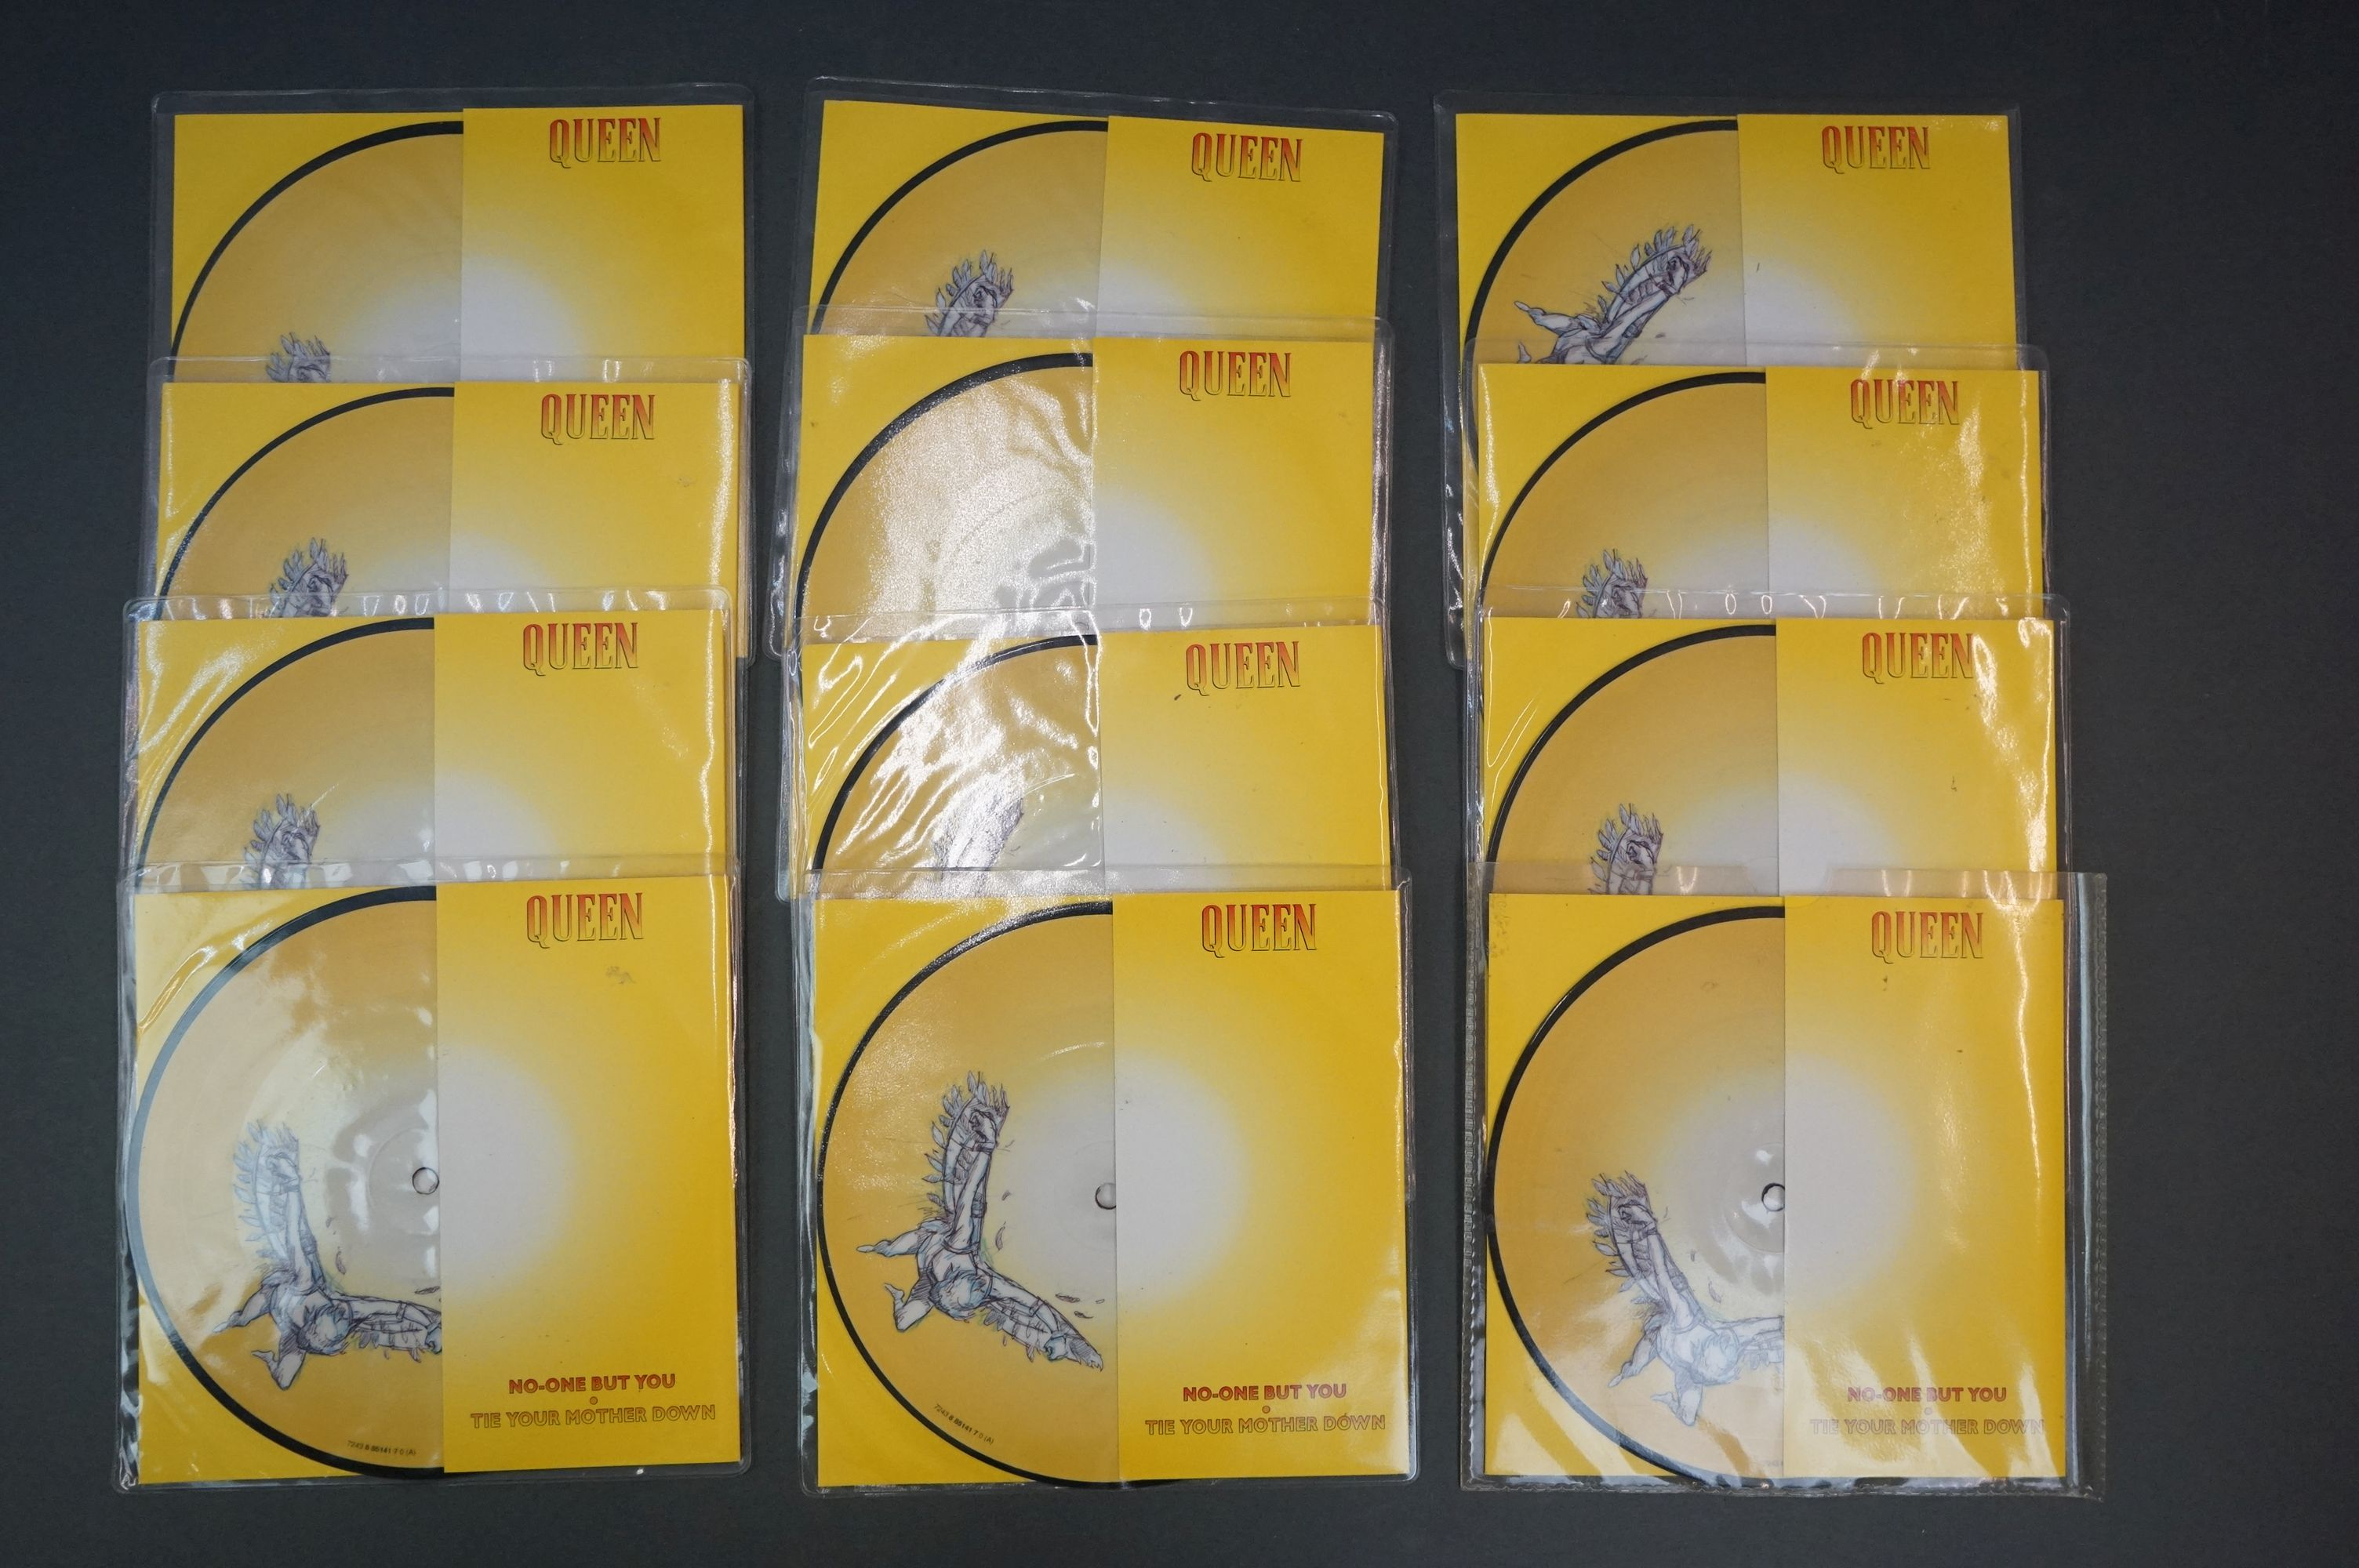 Vinyl - Queen & related collection of 7 inch singles including 12 x No One But You Ltd Edn picture - Image 10 of 11